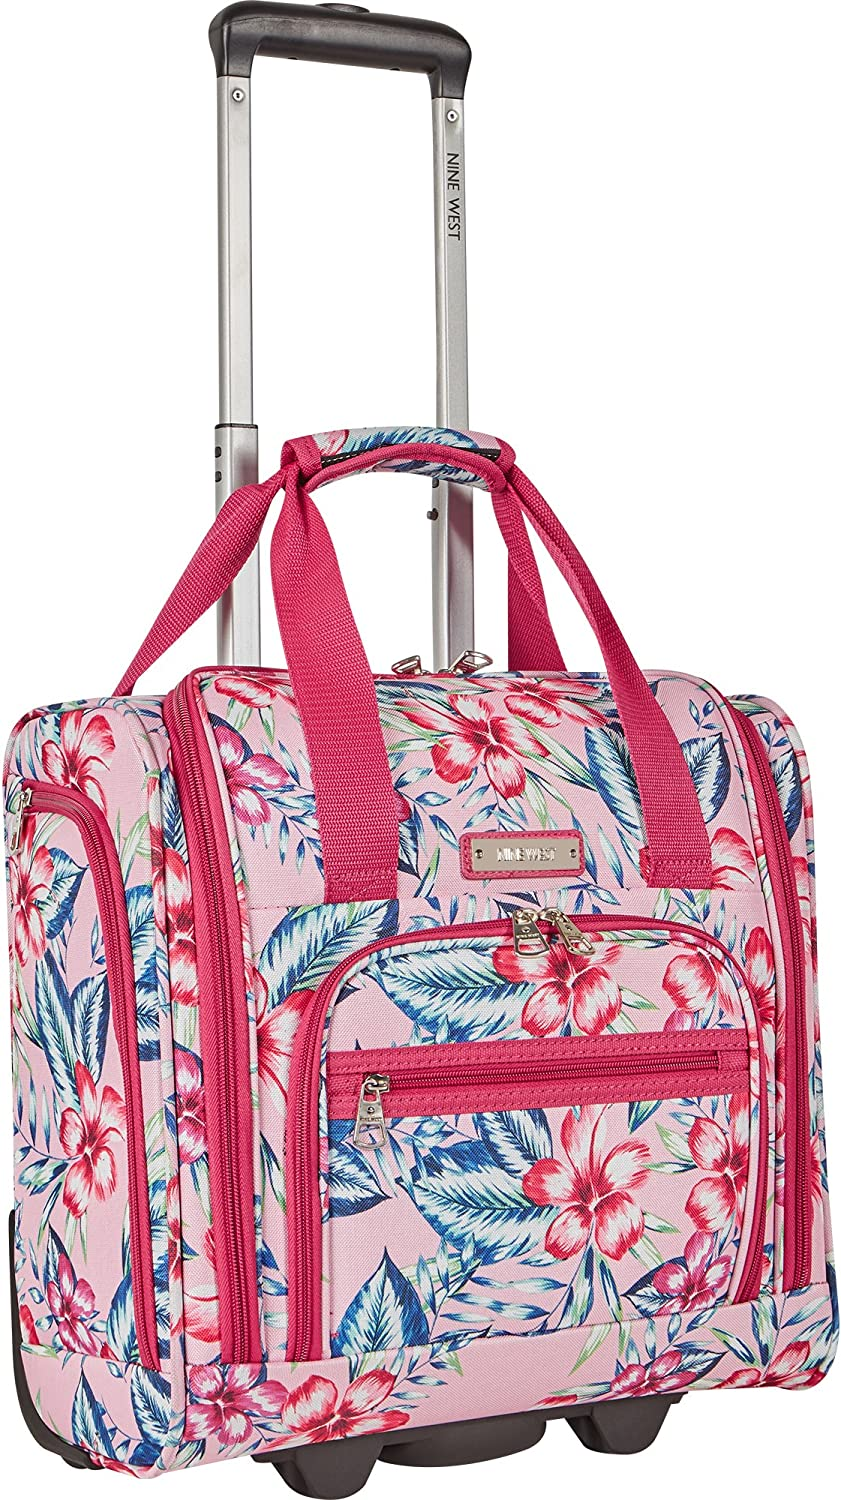 Nine West 15 inch Underseater Carry-On Travel Bag